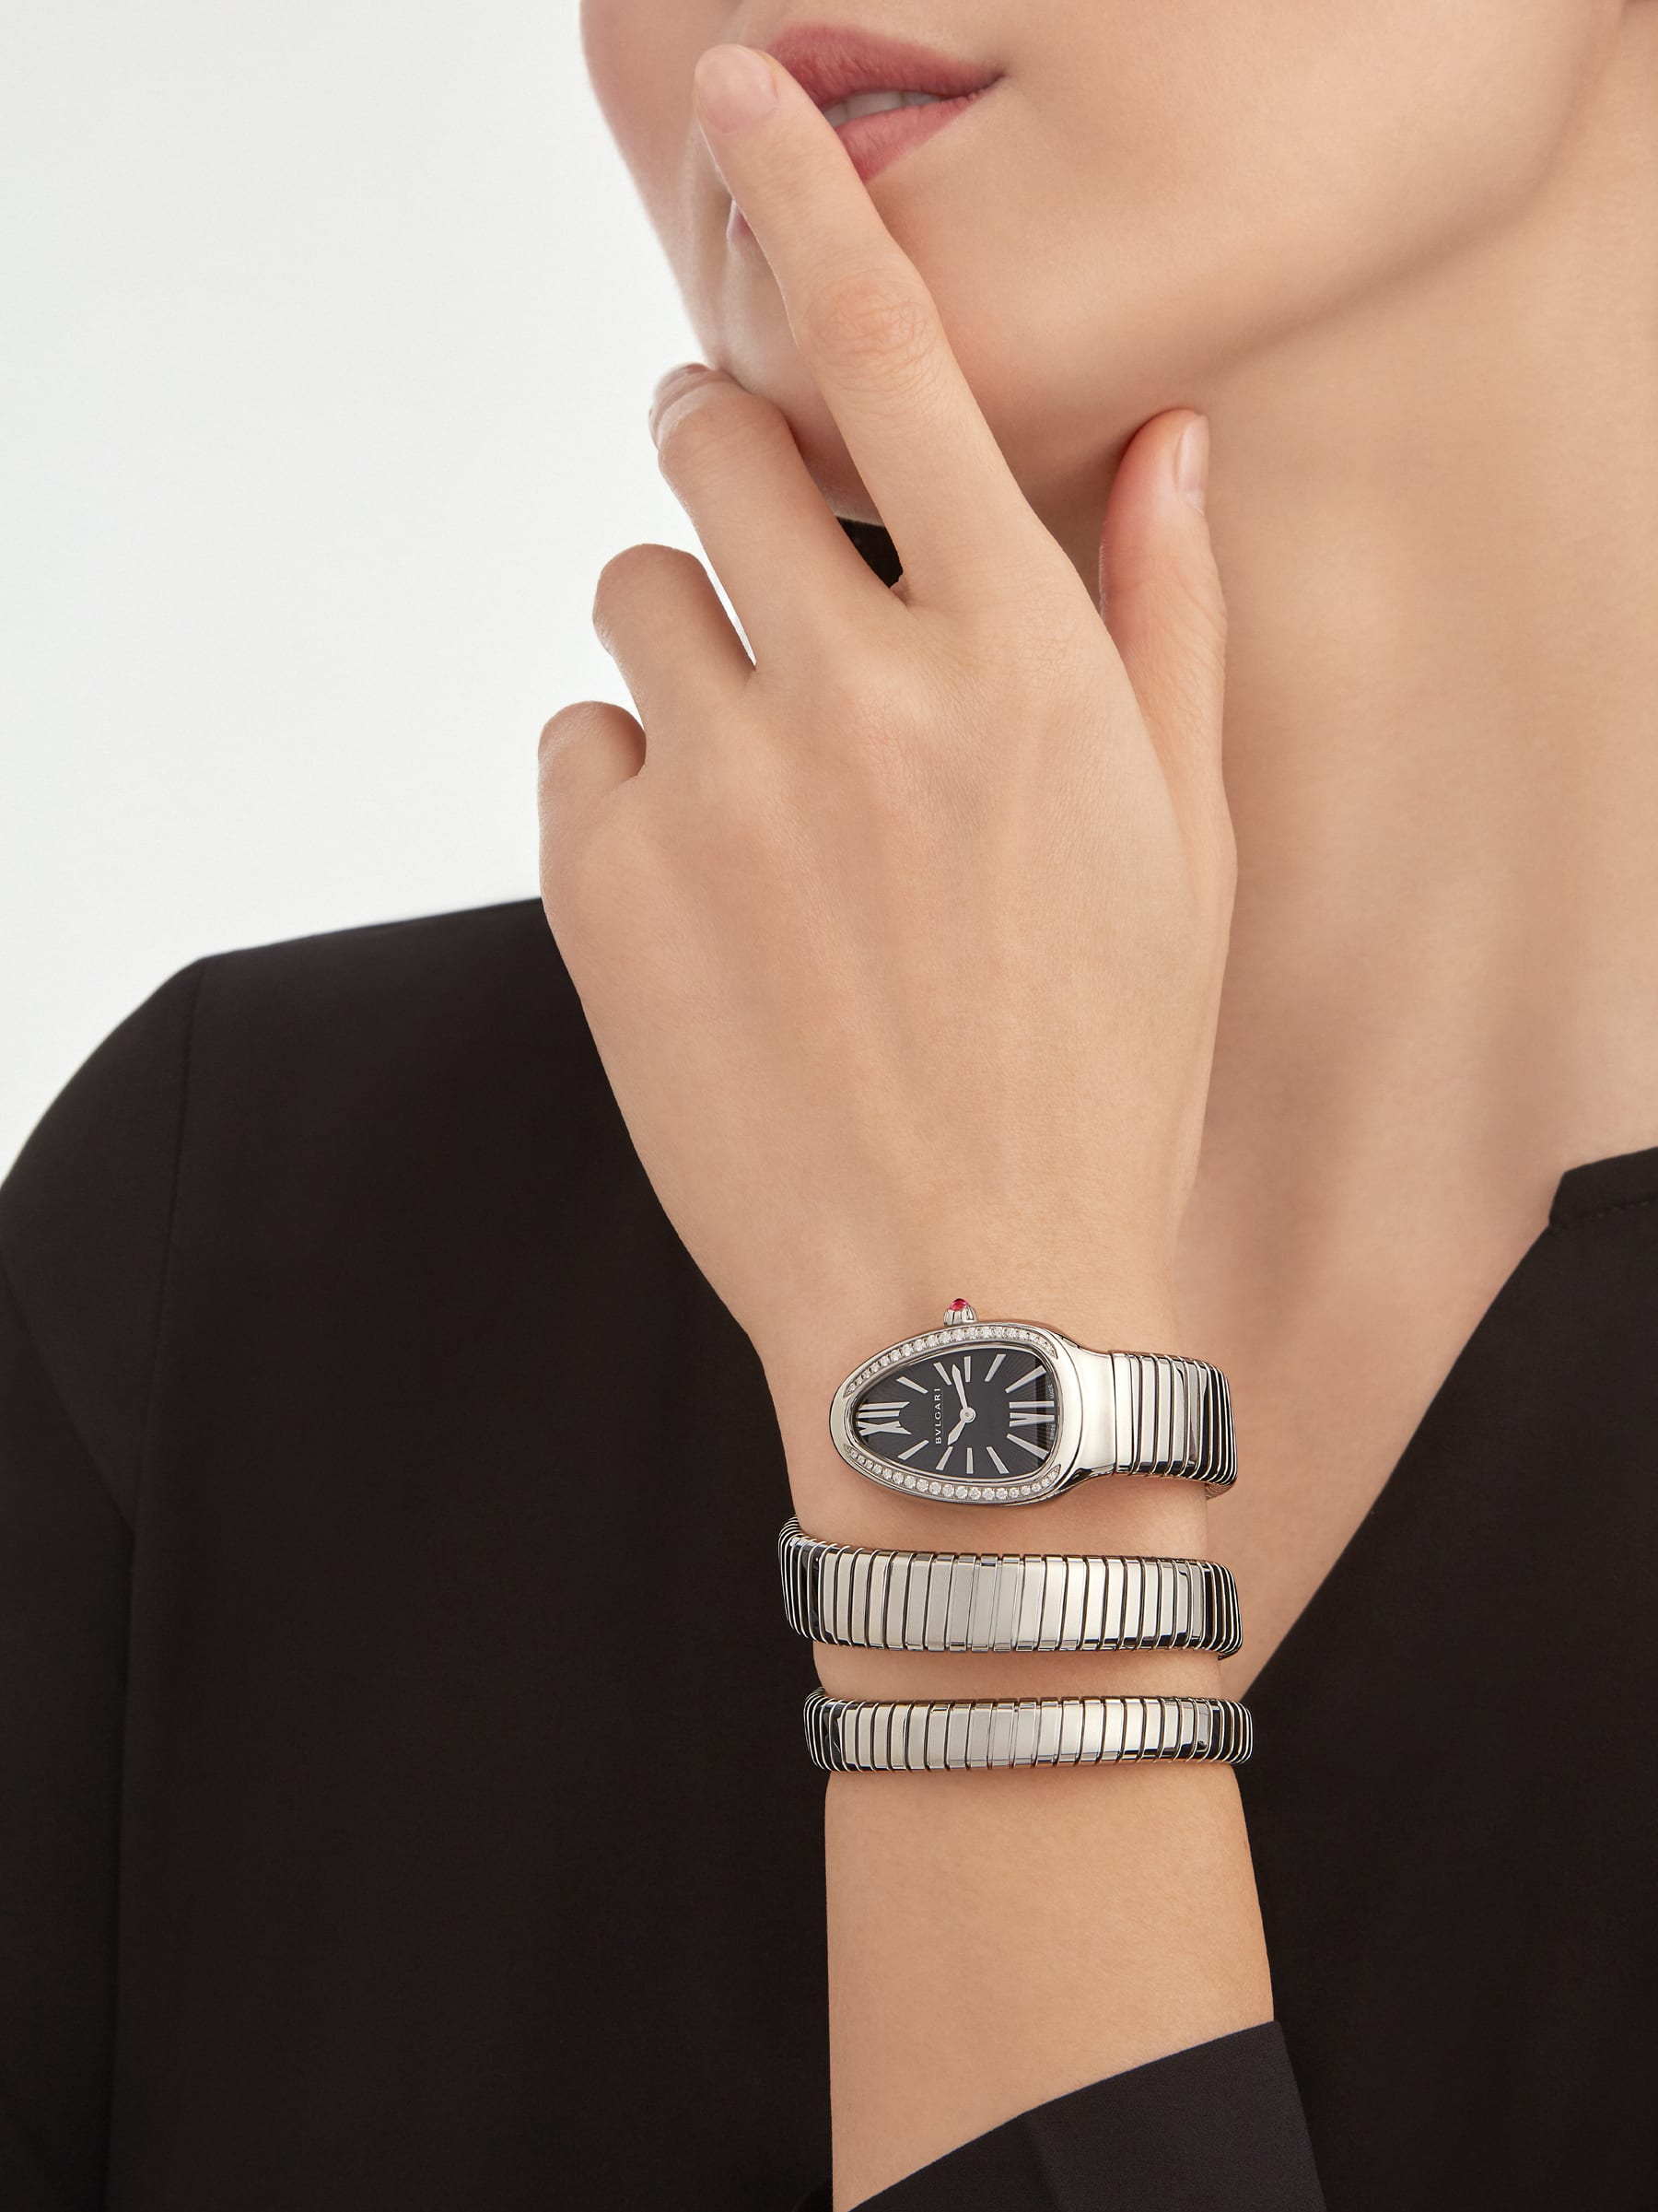 Serpenti Tubogas double spiral watch with stainless steel case and bracelet, bezel set with brilliant-cut diamonds and black dial with guilloché soleil treatment. Water-resistant up to 30 metres. Large size 103433 image 1